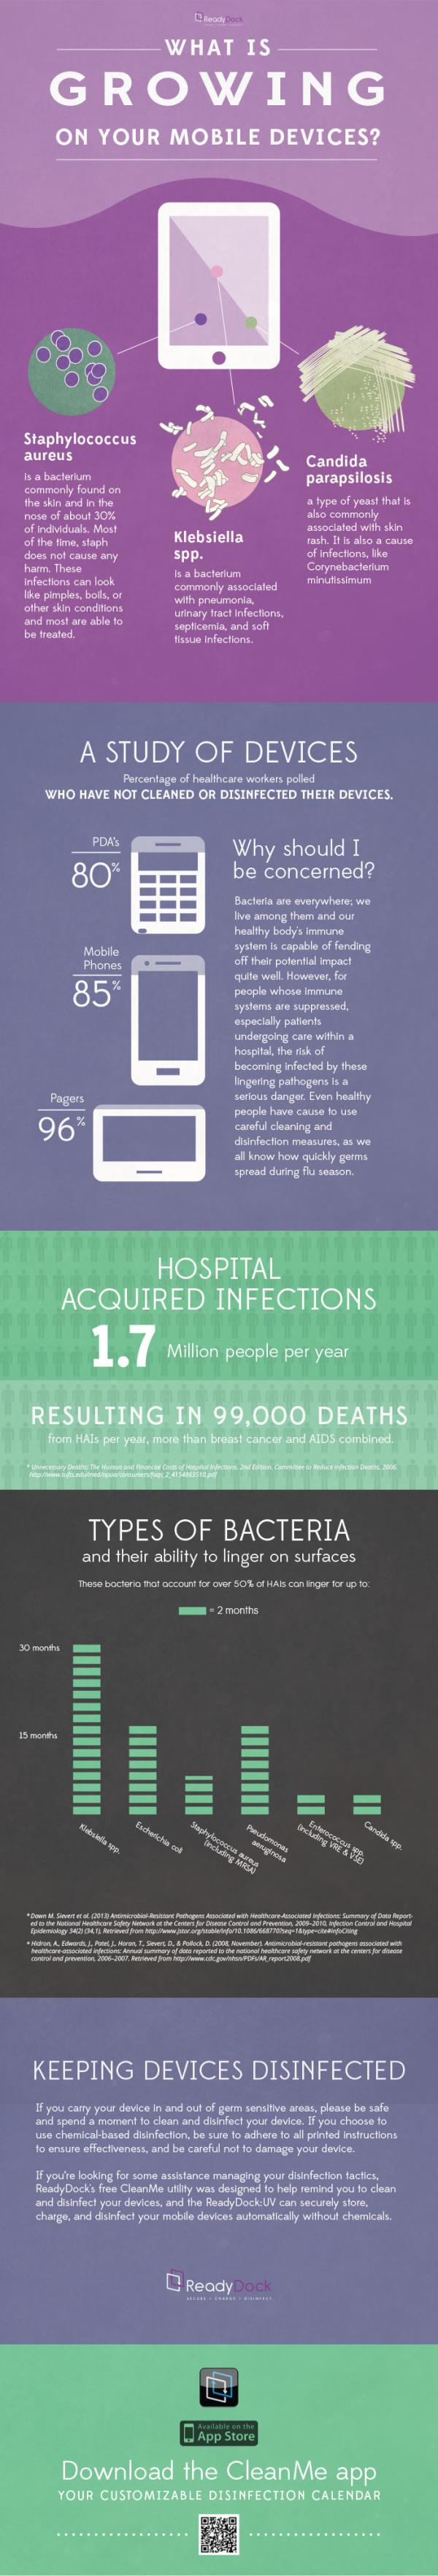 [Infographic] The Ability of Bacteria to Linger on Mobile Devices